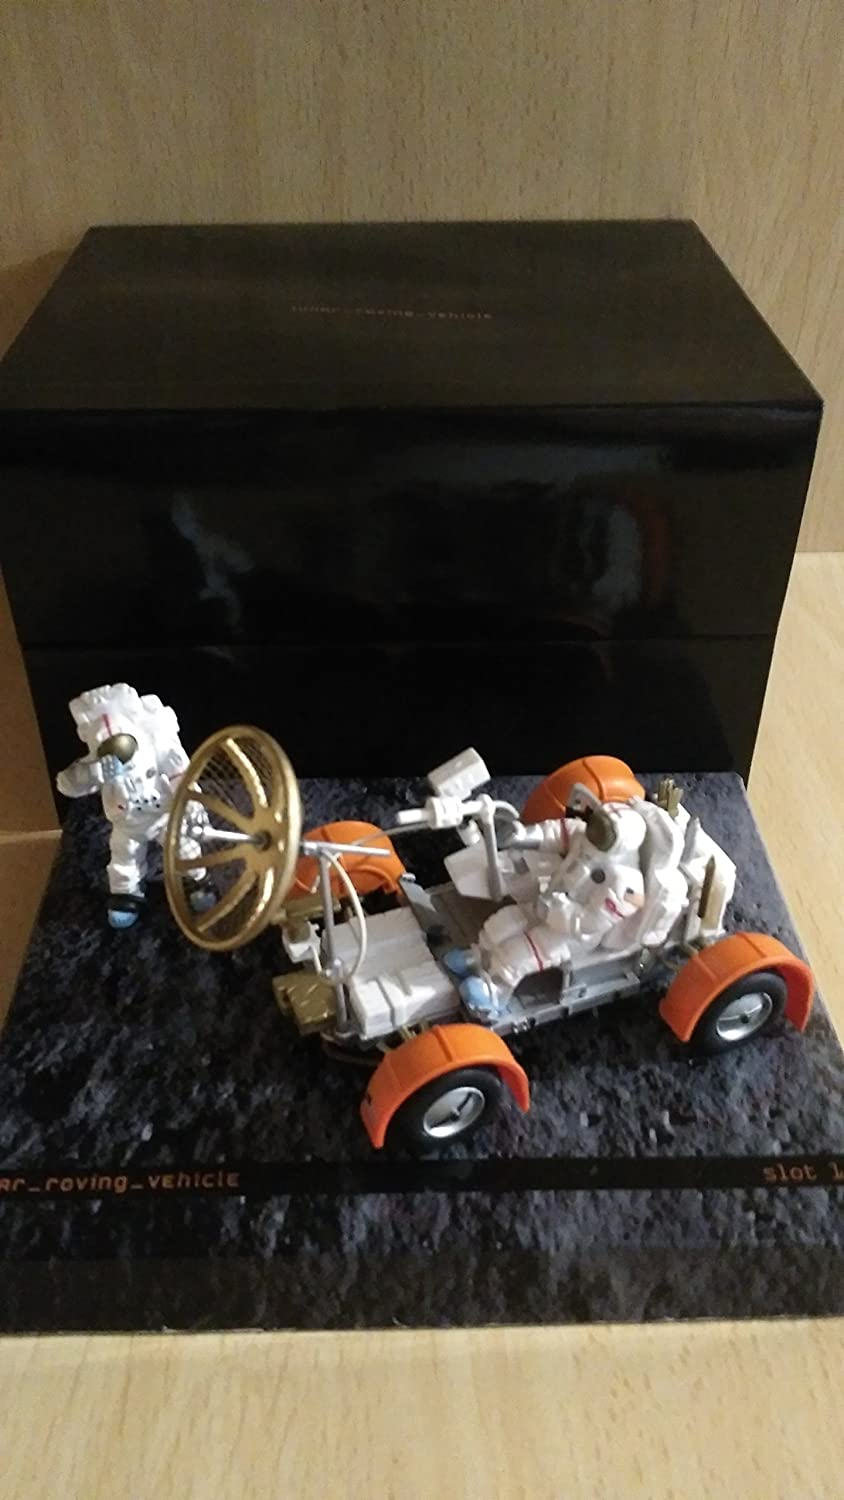 Scalextric power slot lunar roving vehicle